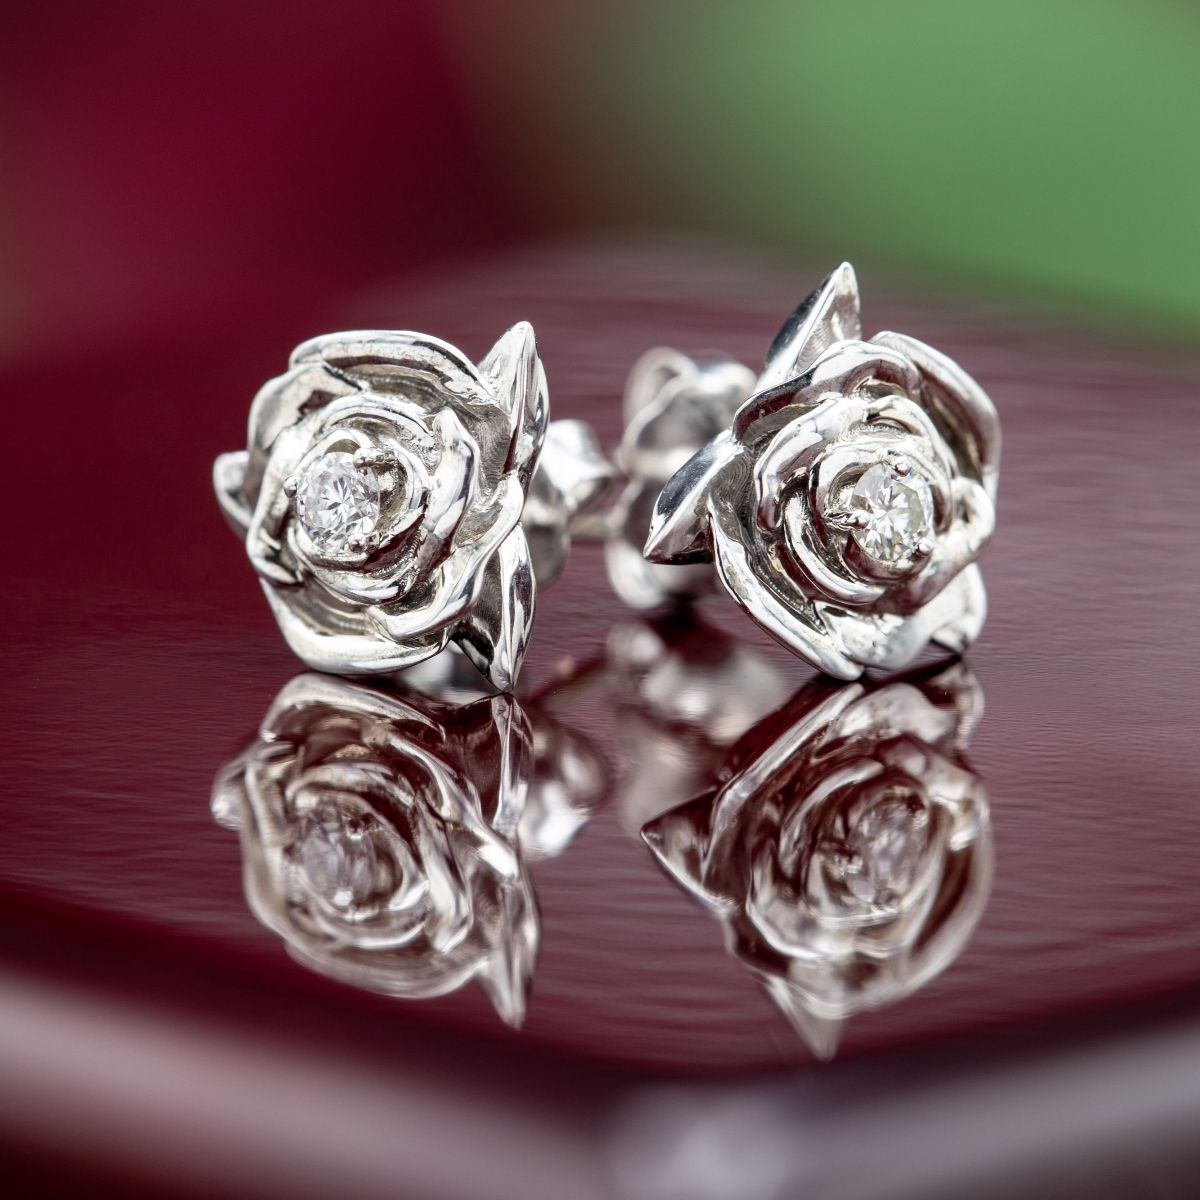 Sculptural Rose Studs In White Gold With Diamond Centers Tucked Into The Petals